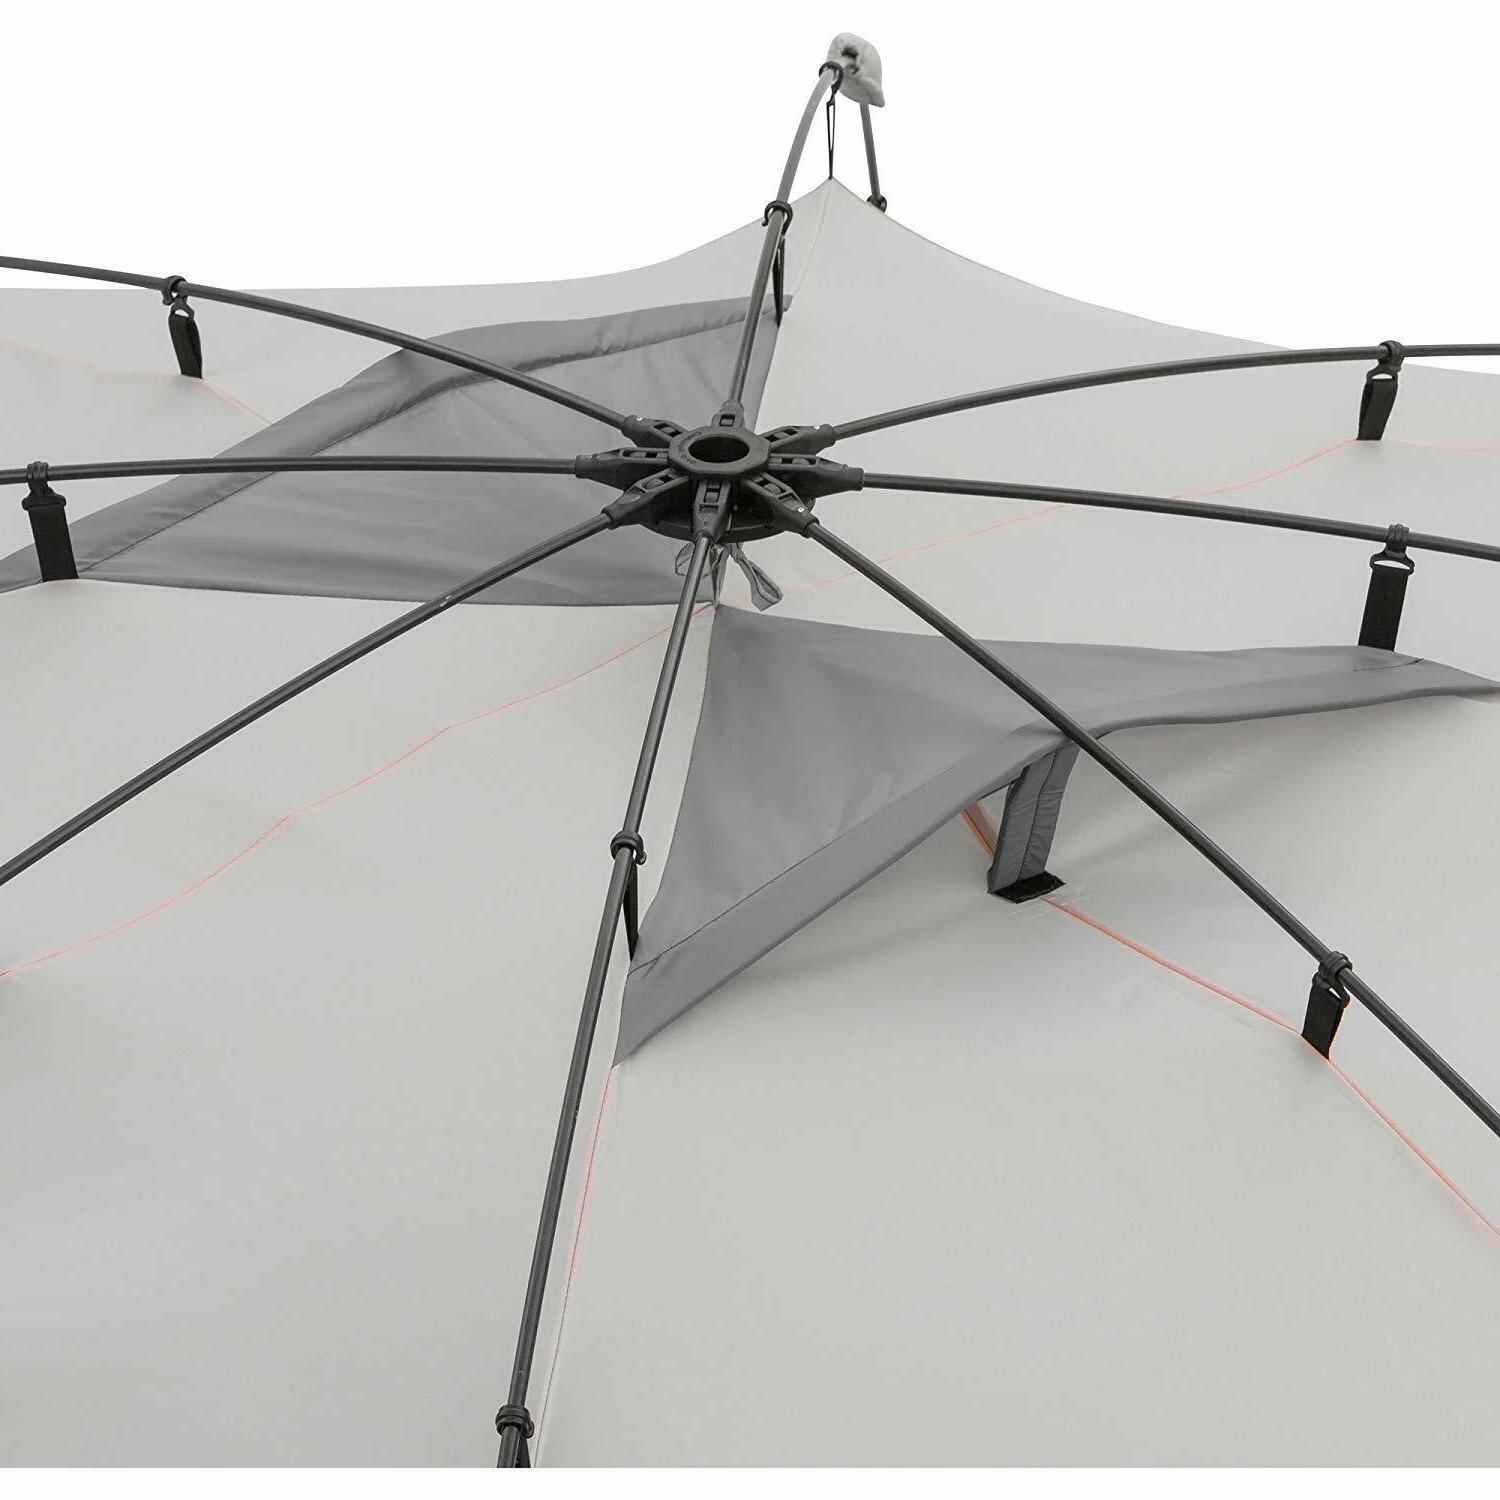 Instant Tent x 8 Canopy Camping